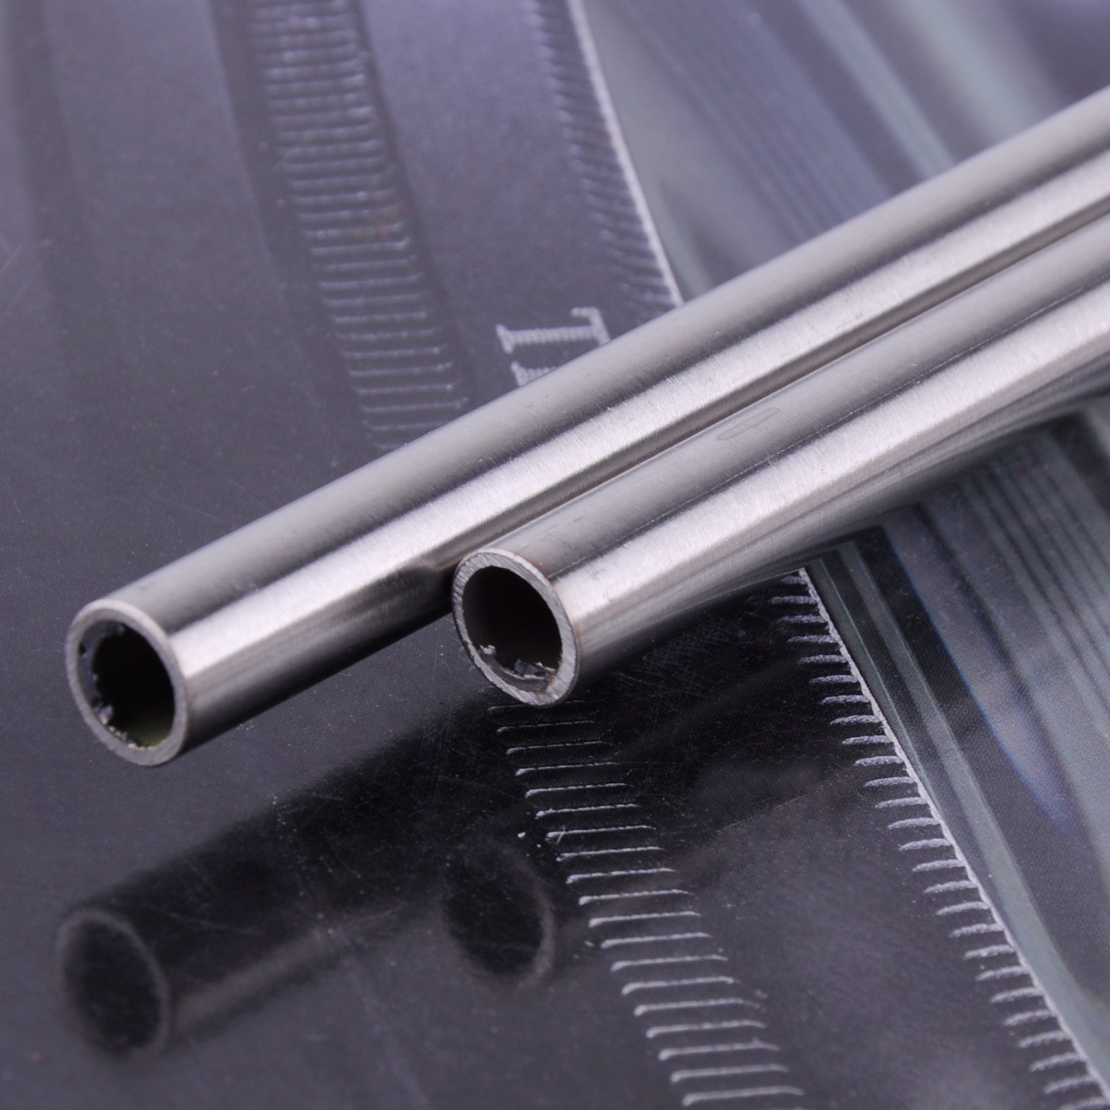 1Pcs 304 Stainless Steel Capillary Tube OD 8mm x 6mm ID Length 0.5m New